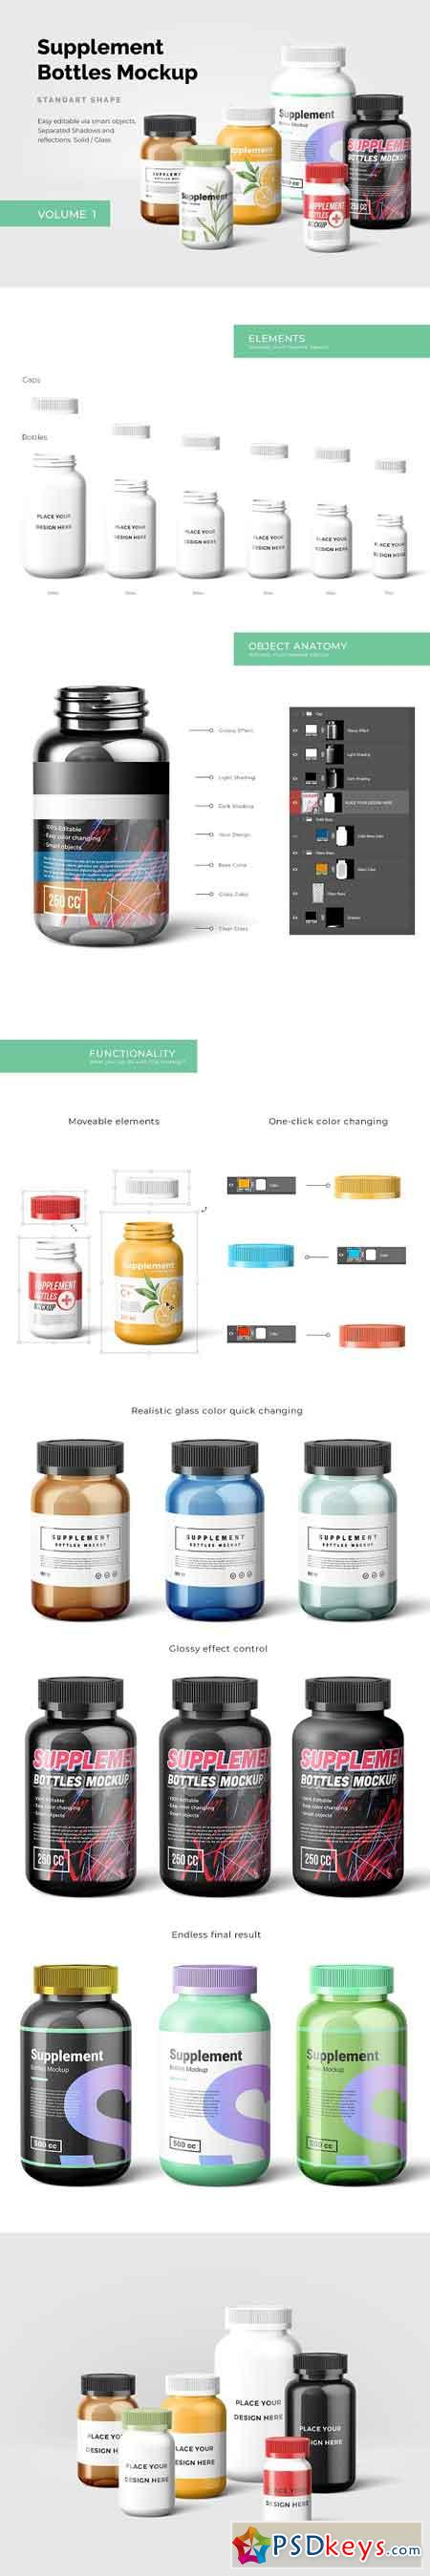 Supplement Bottles Mockup 2507729